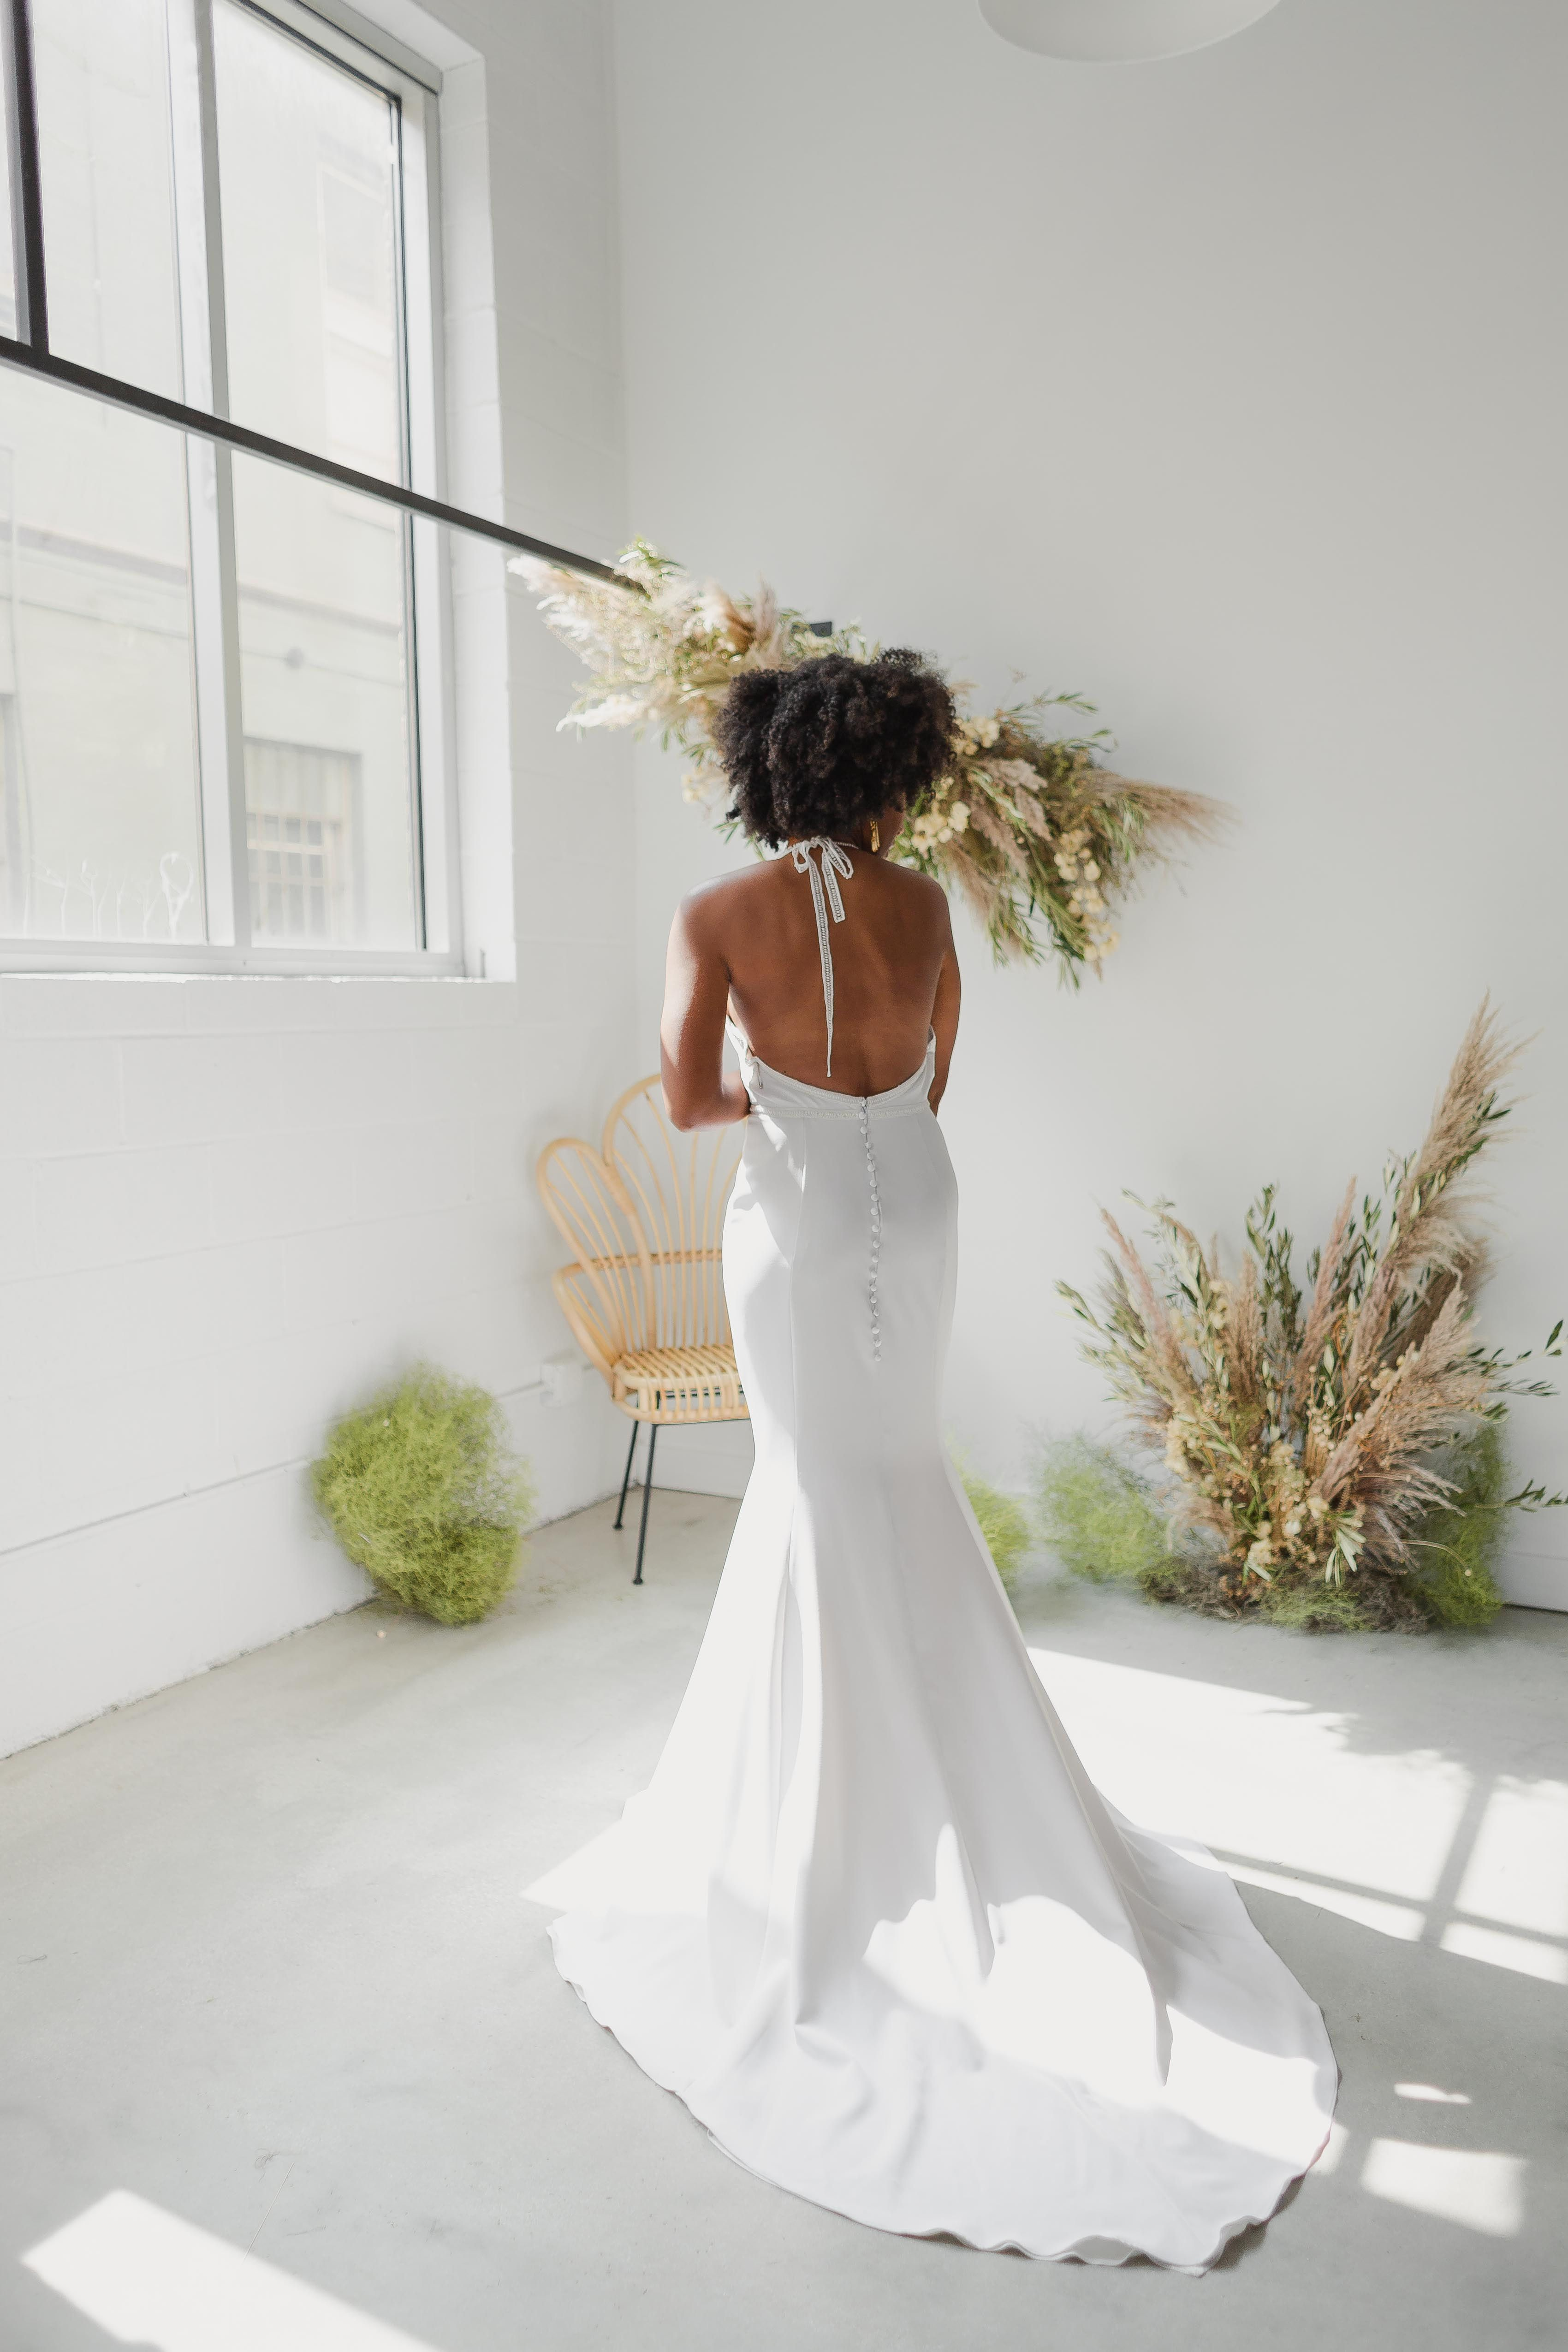 Brighton Gown By Goli June Bridal Fit And Flare Skirt High Neck Wedding Dress Geometric Lace [ 5100 x 3400 Pixel ]